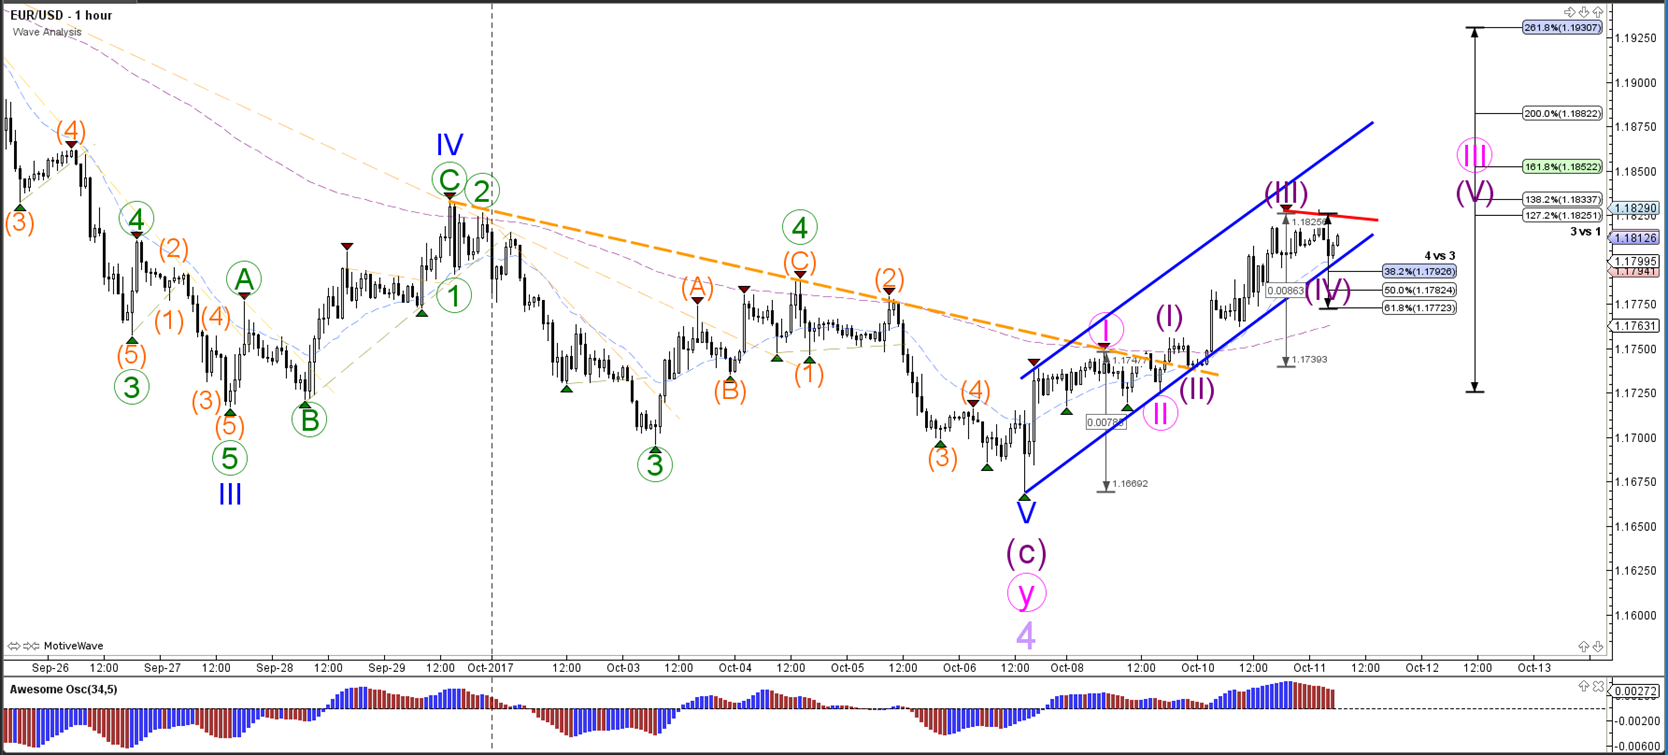 EUR/USD is in a smaller wave 4 within bullish trend - Admiral Markets